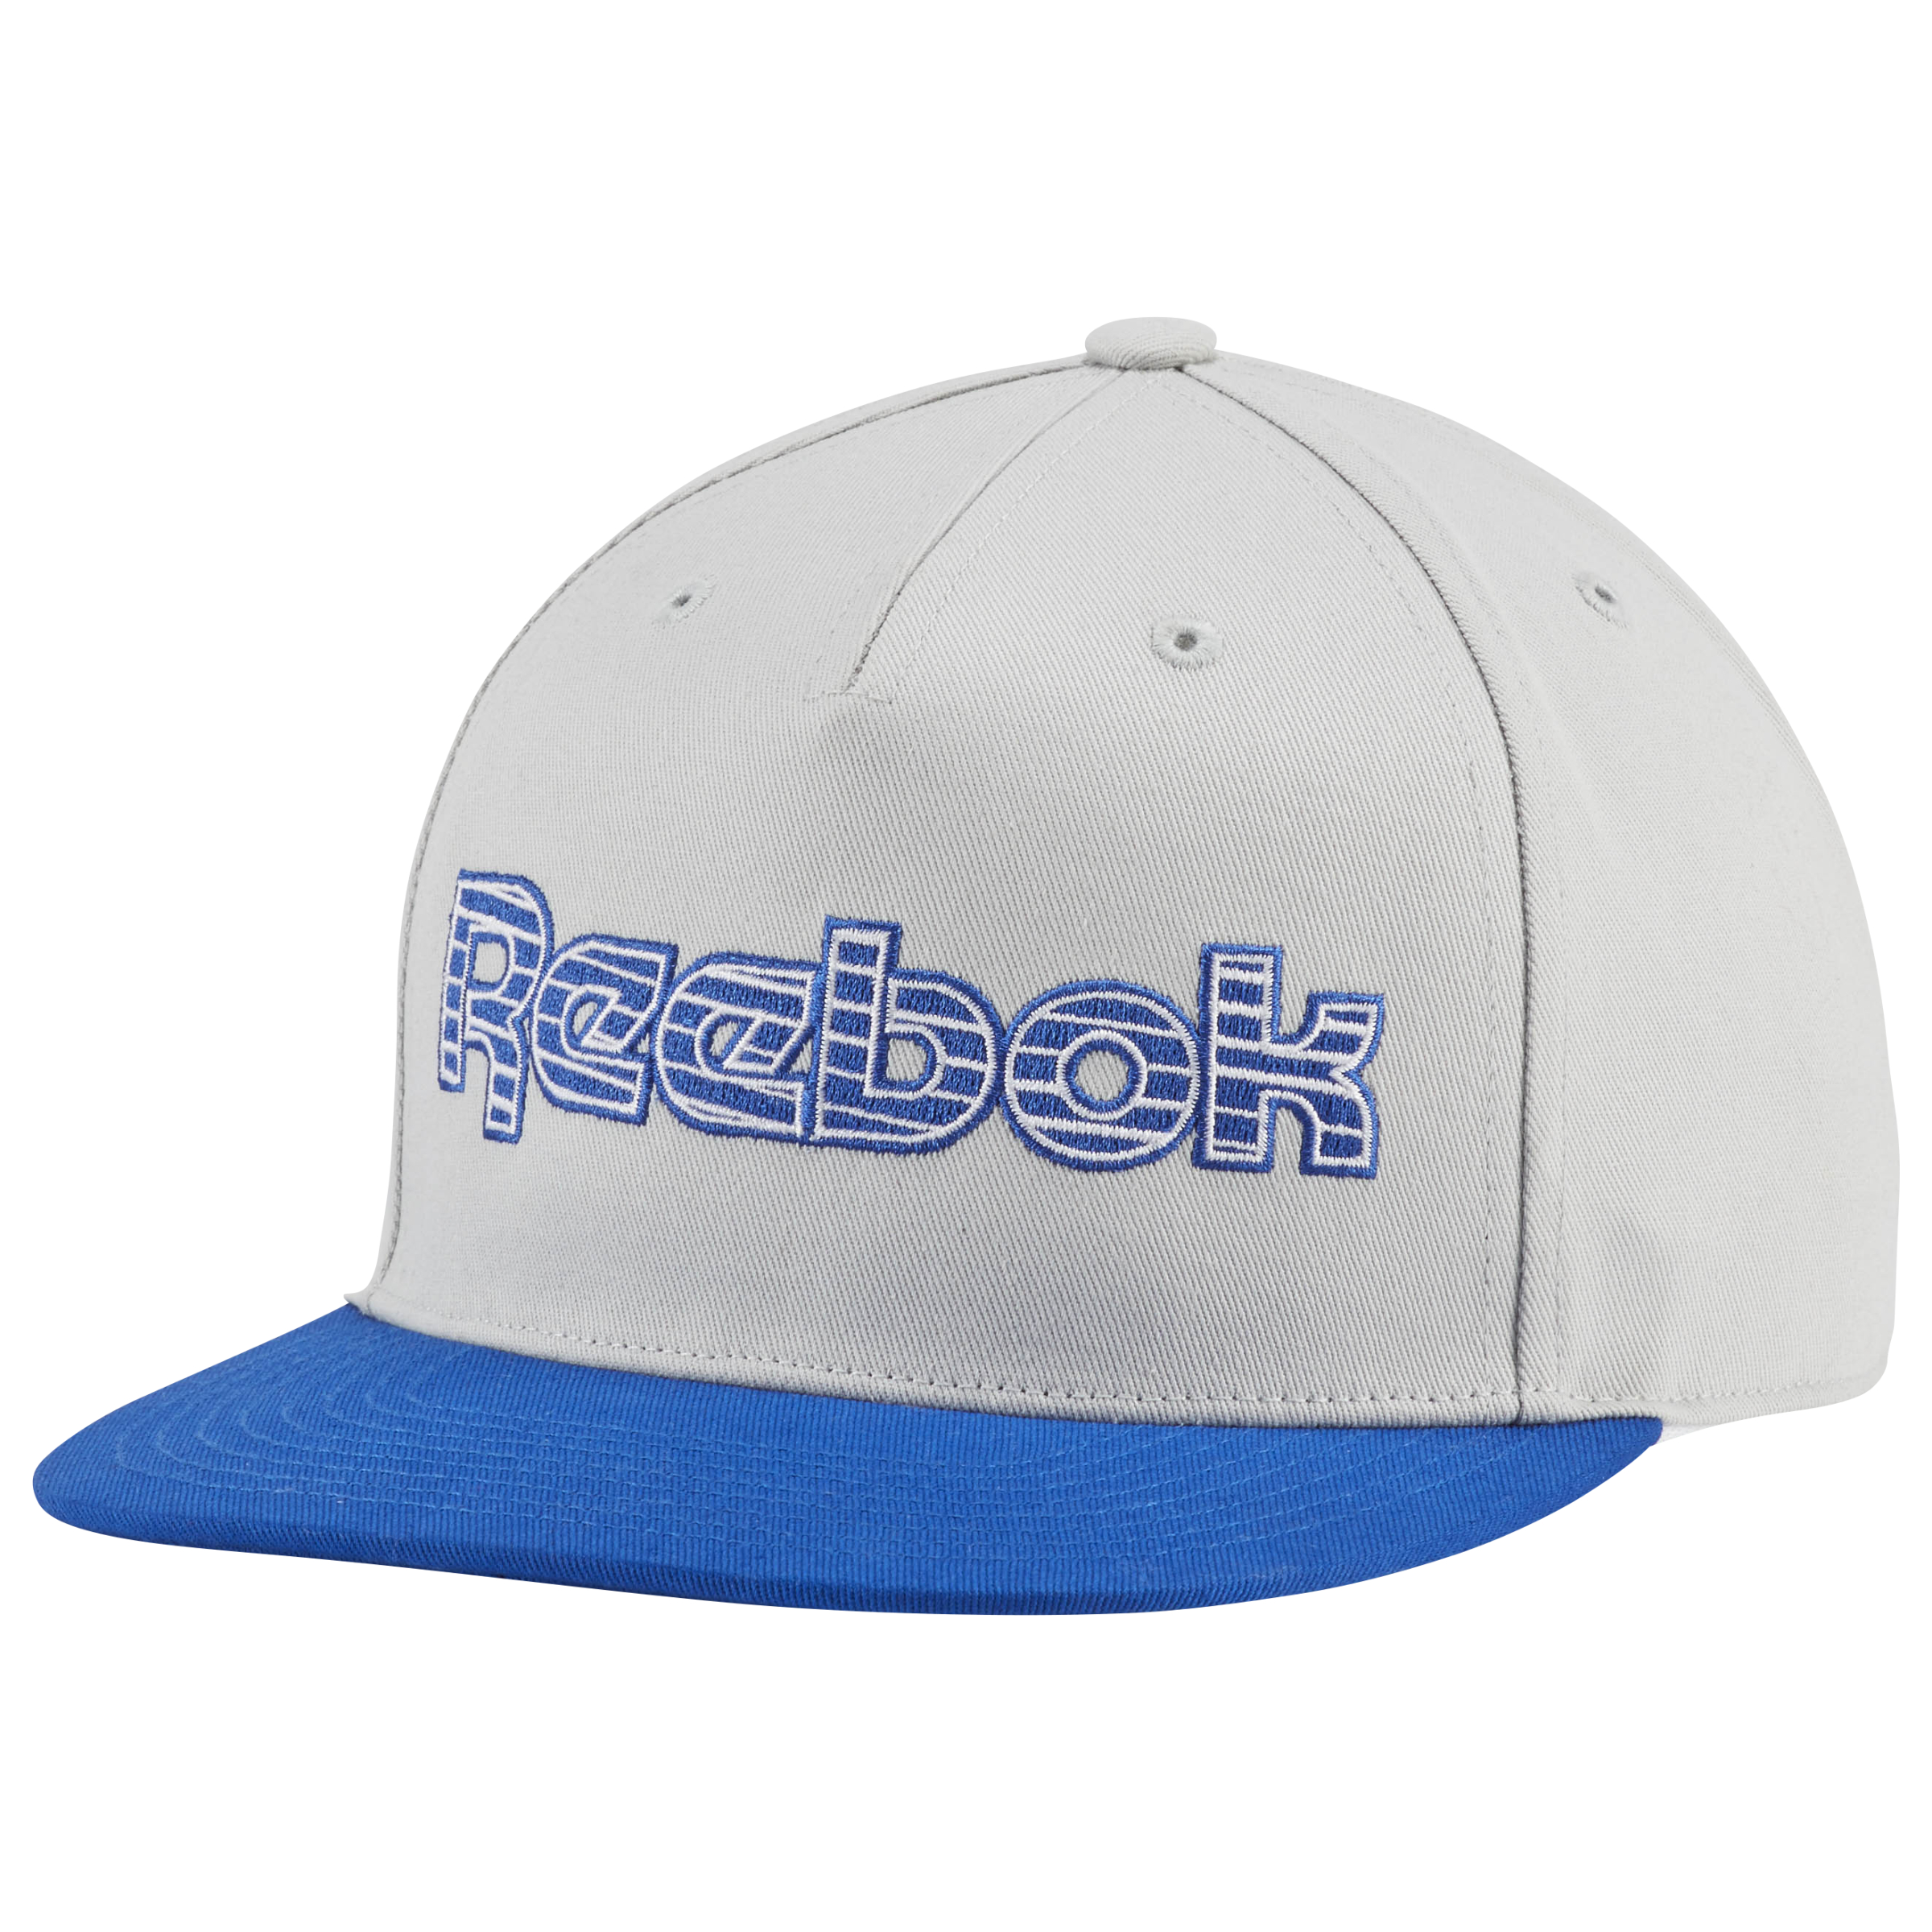 Reebok-Men-039-s-Classics-Basketball-6-Panel-Cap thumbnail 4